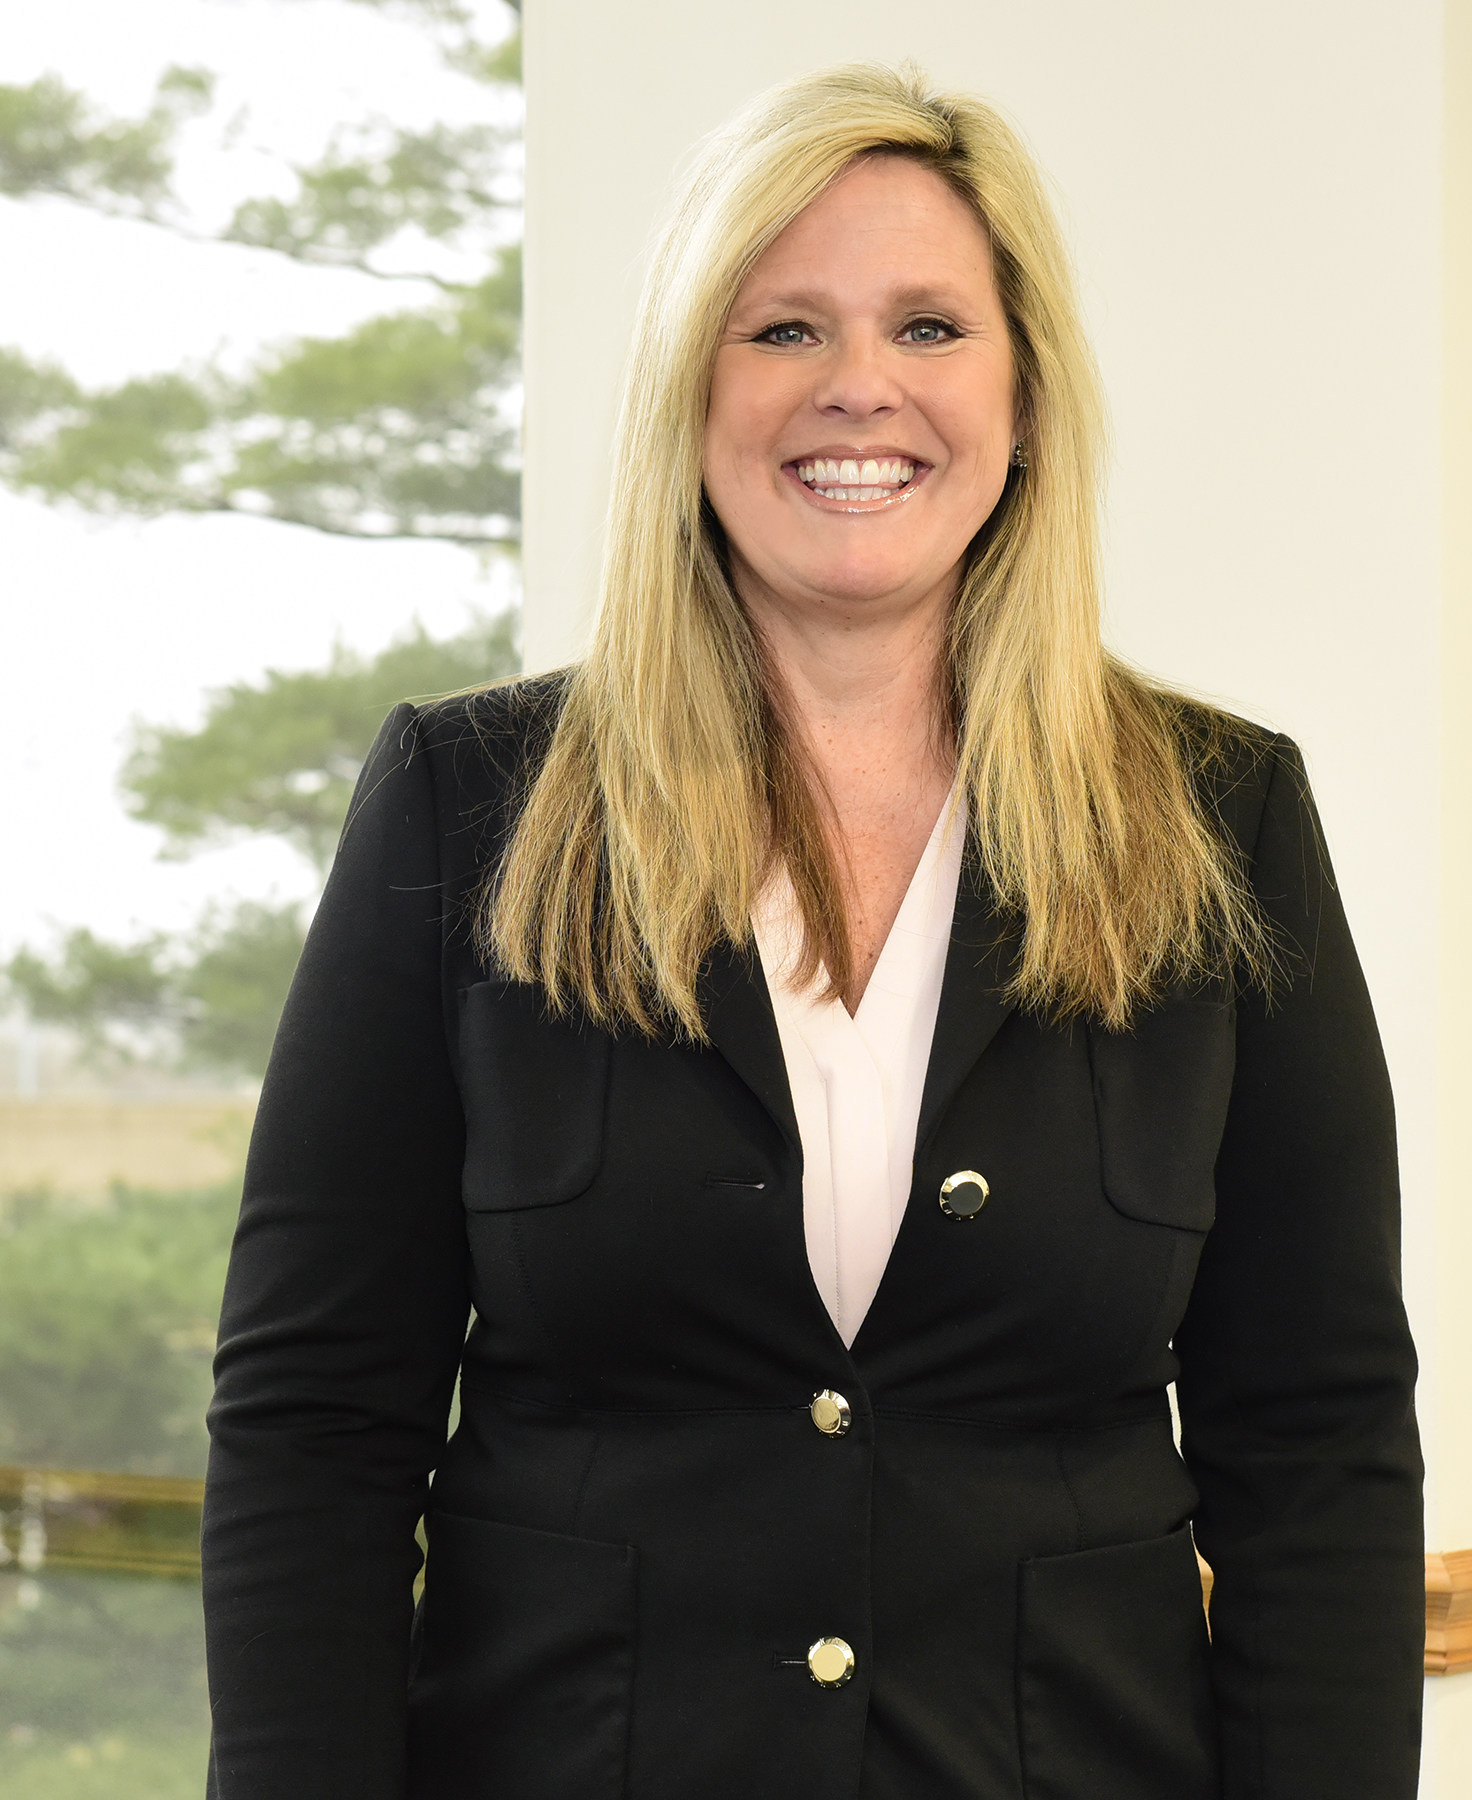 Lesley Schafer has been appointed Senior Regional Sales Director at Boston Mutual Life Insurance Company for the carrier's Central region, covering Michigan, Ohio, Indiana, Kentucky, and Western Pennsylvania.